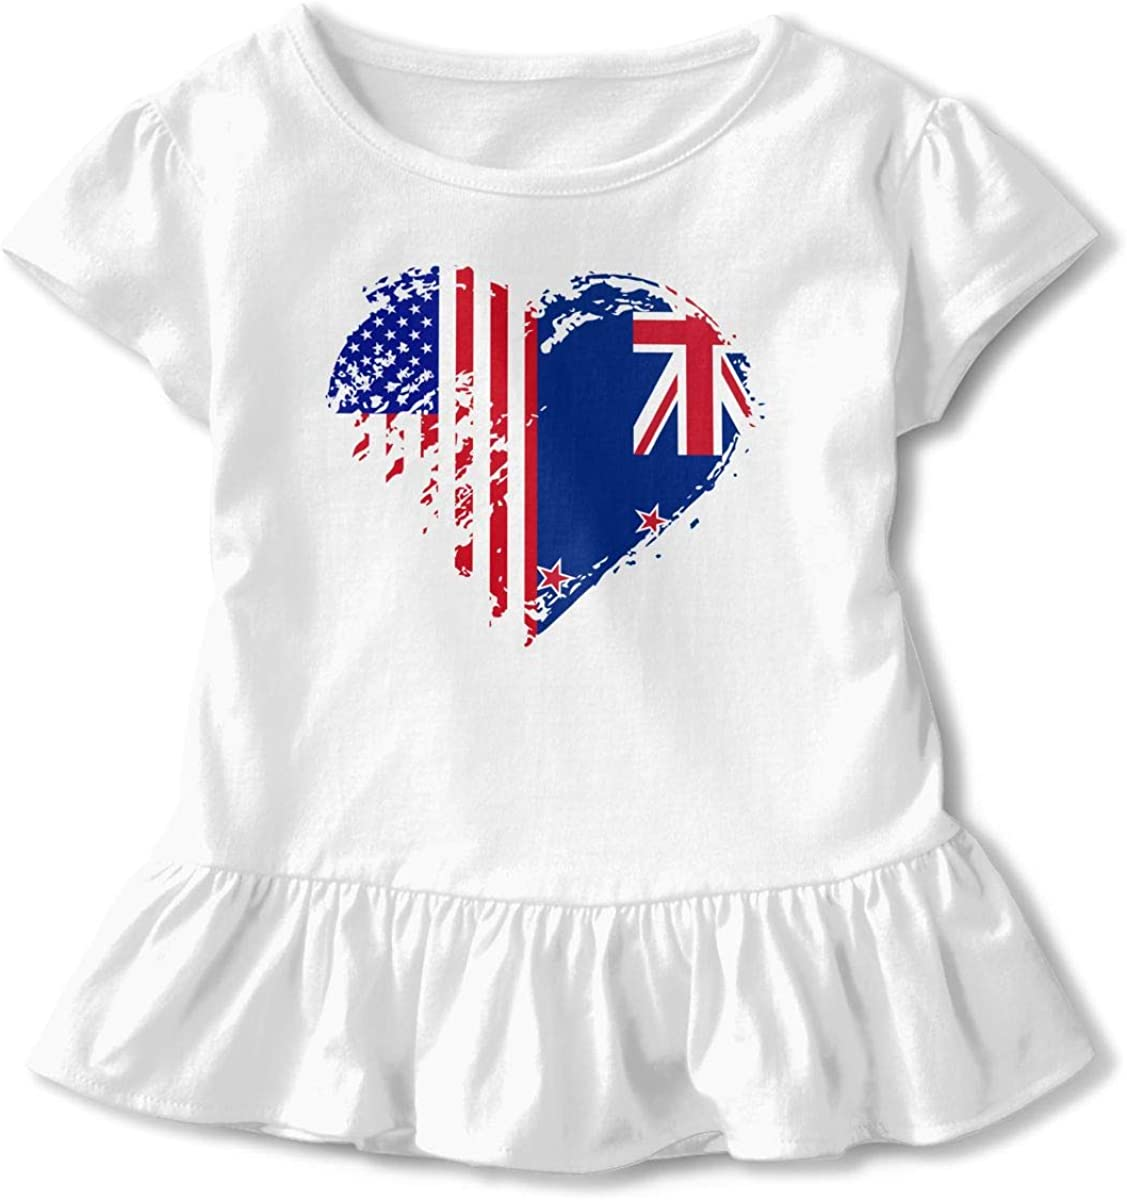 Grungy New Zealand American Flag Heart Toddler Girls Short Sleeve Graphic Top